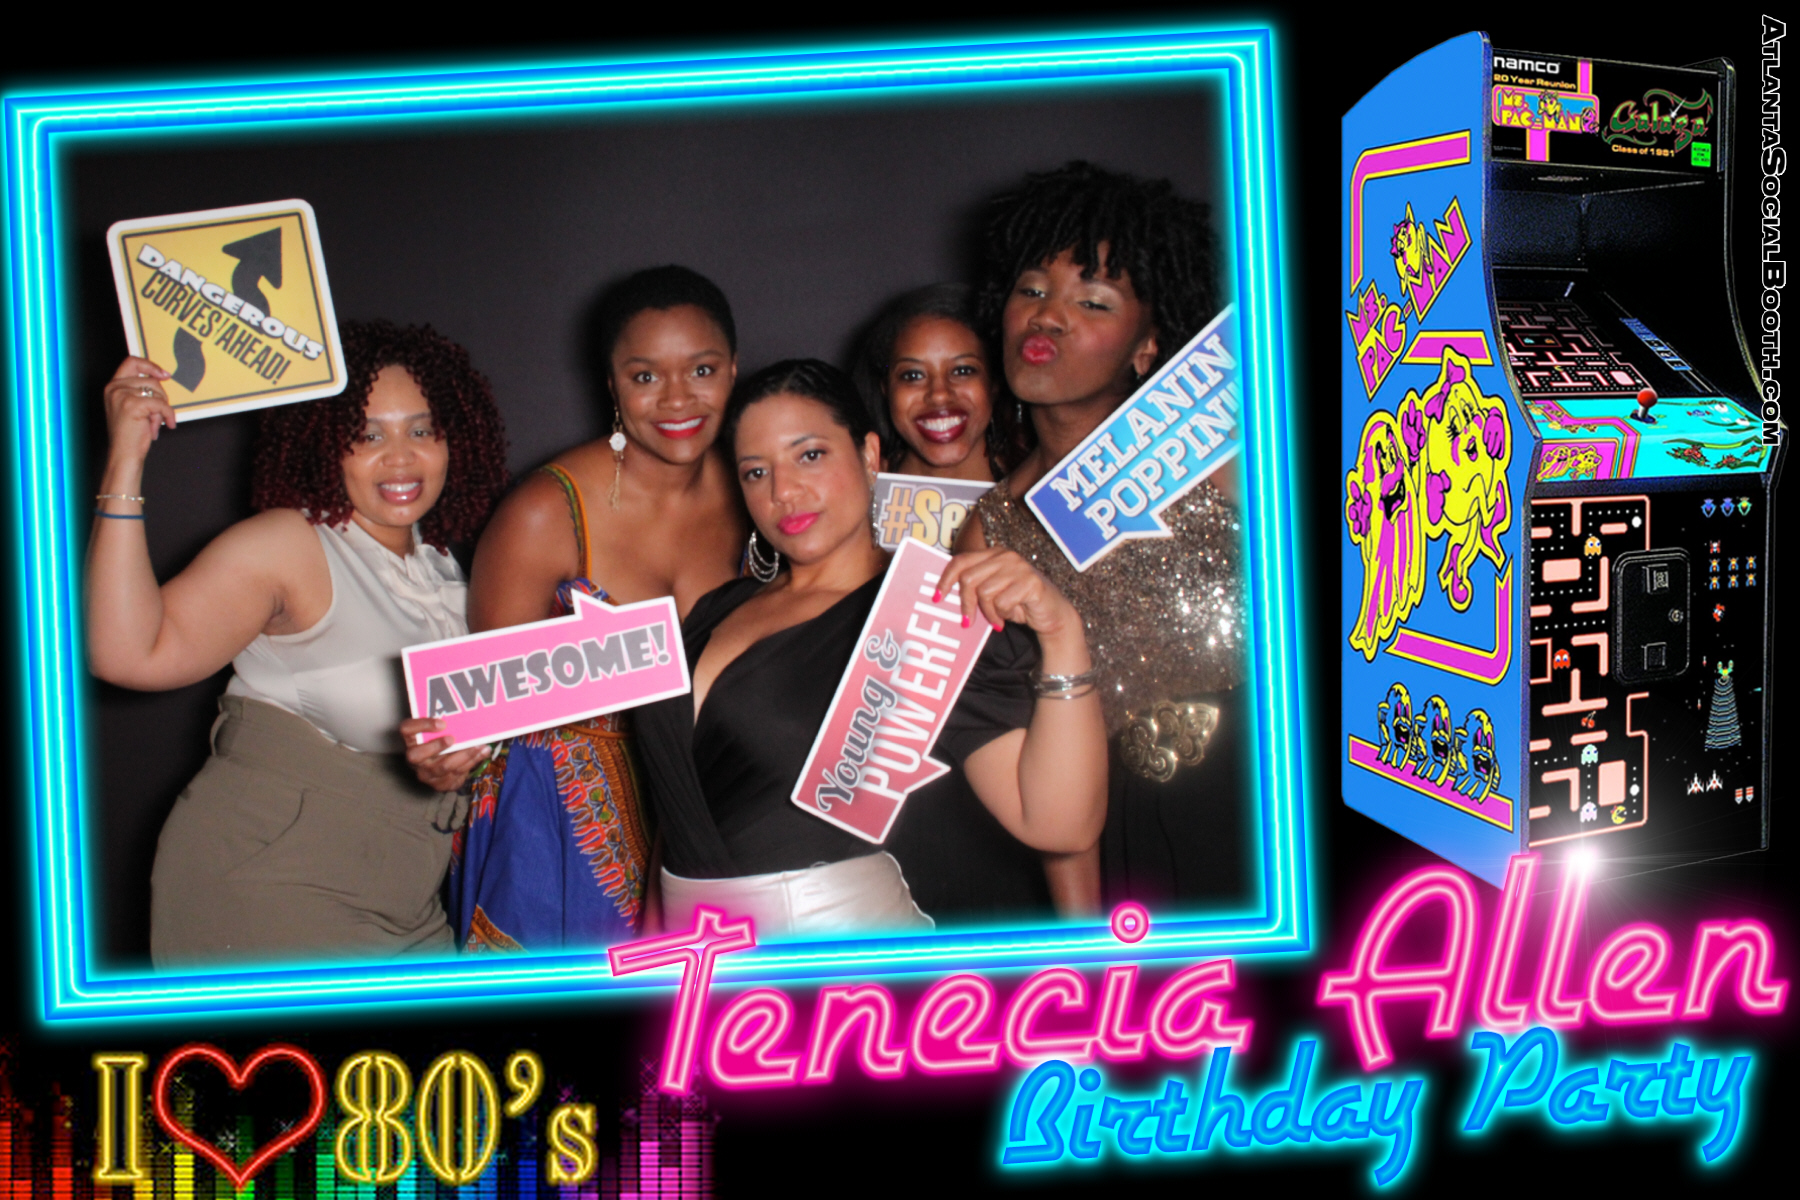 Tenecia Birthday Party